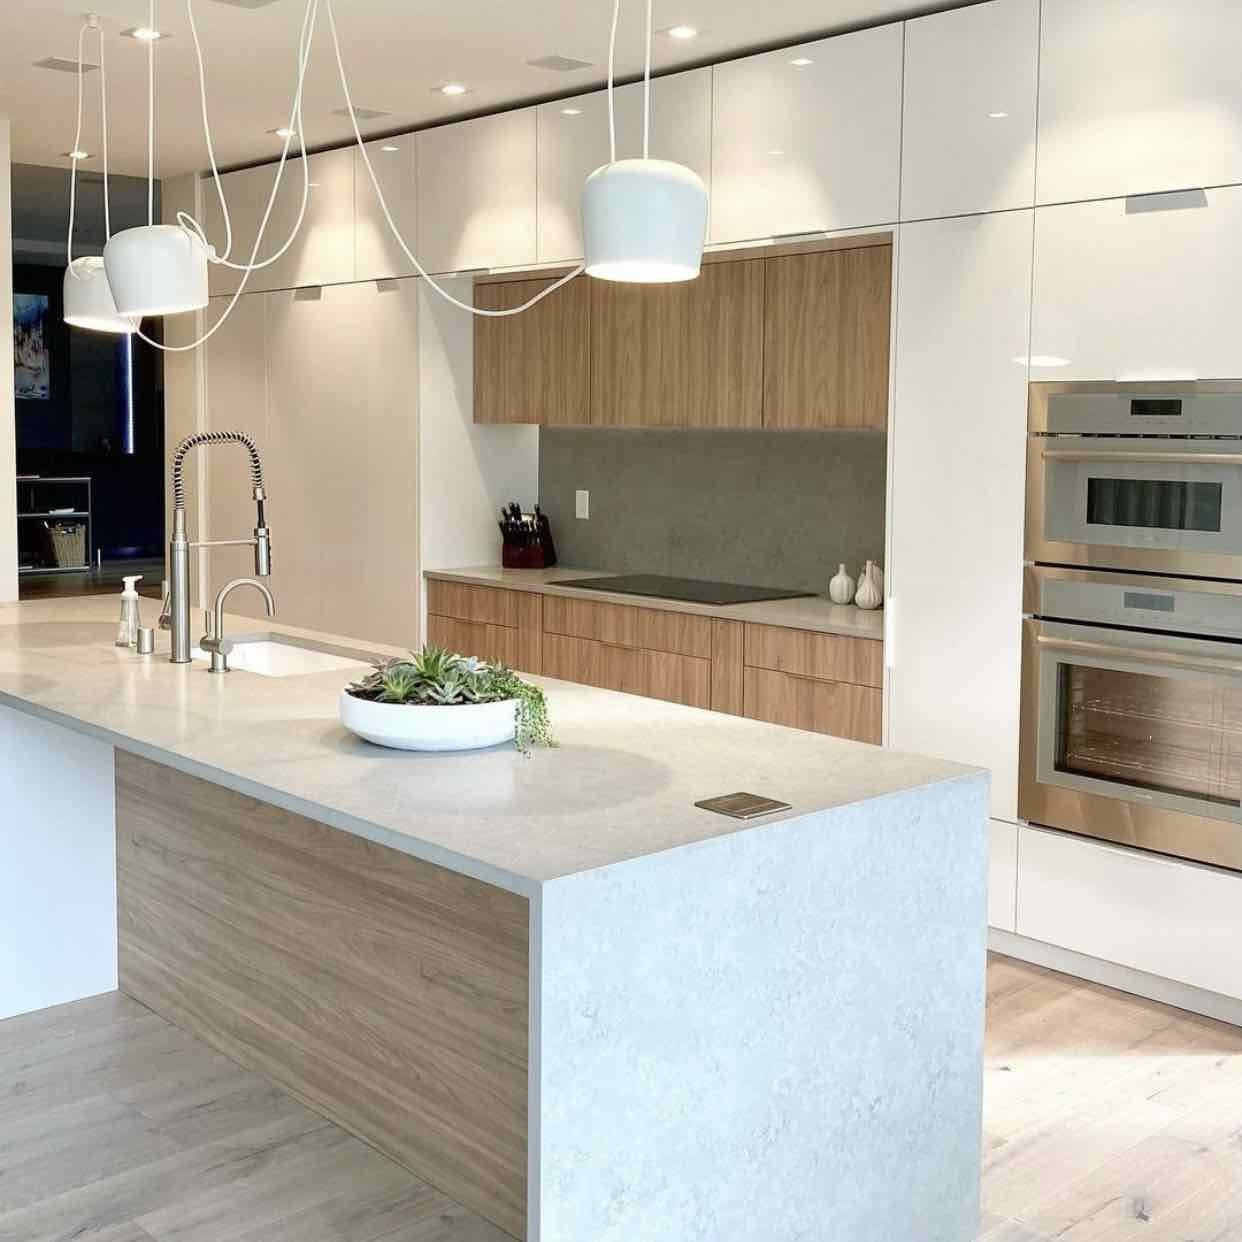 modern kitchen with white cabinets and light hardwood flooring